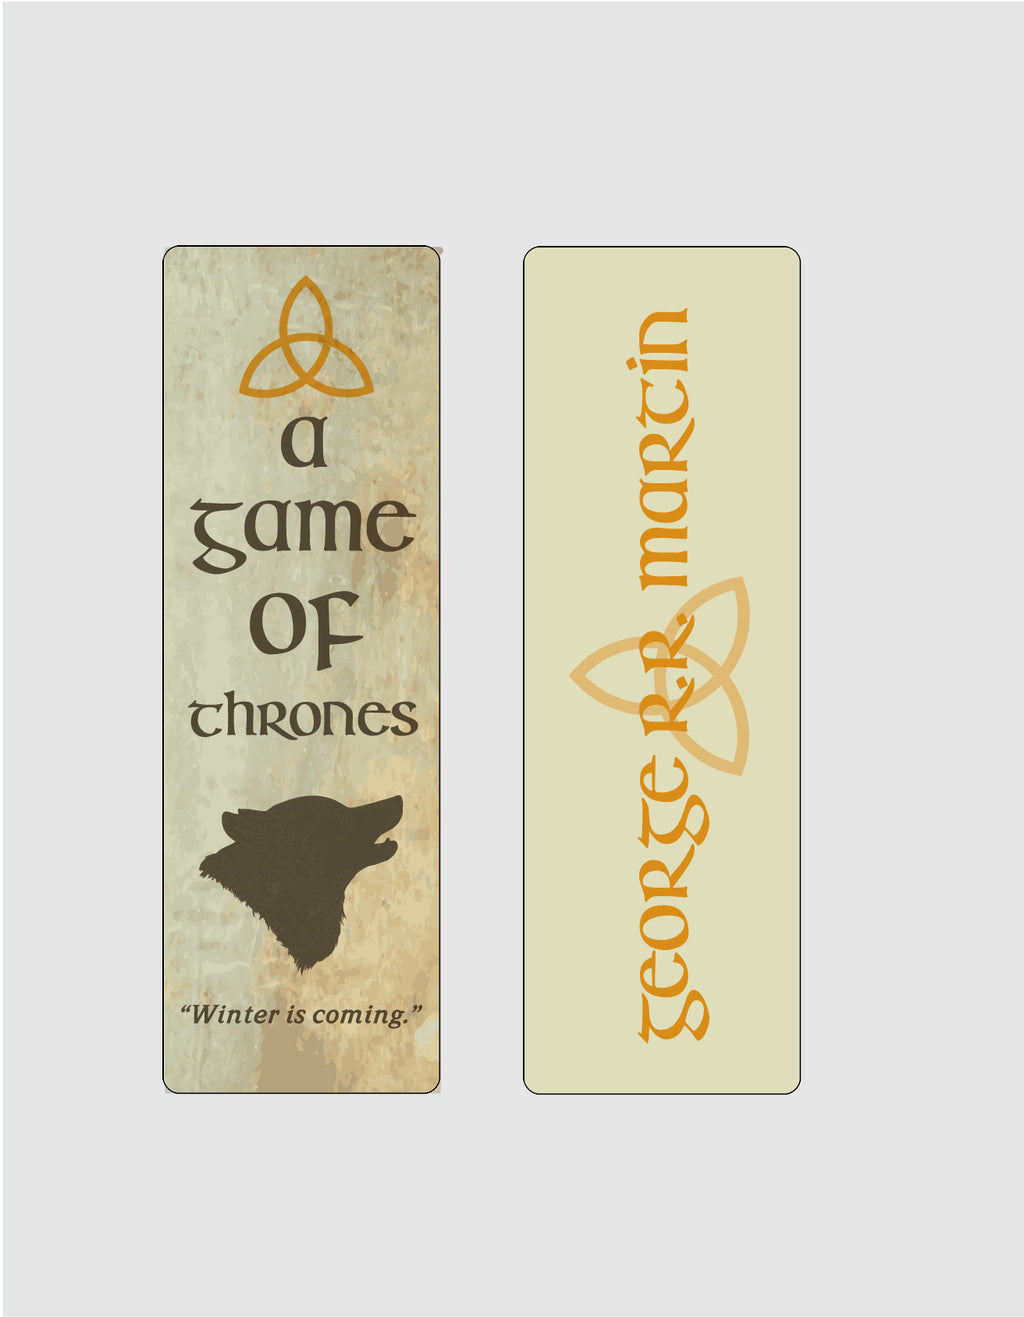 A Game of Thrones by George R. R. Martin Bookmark